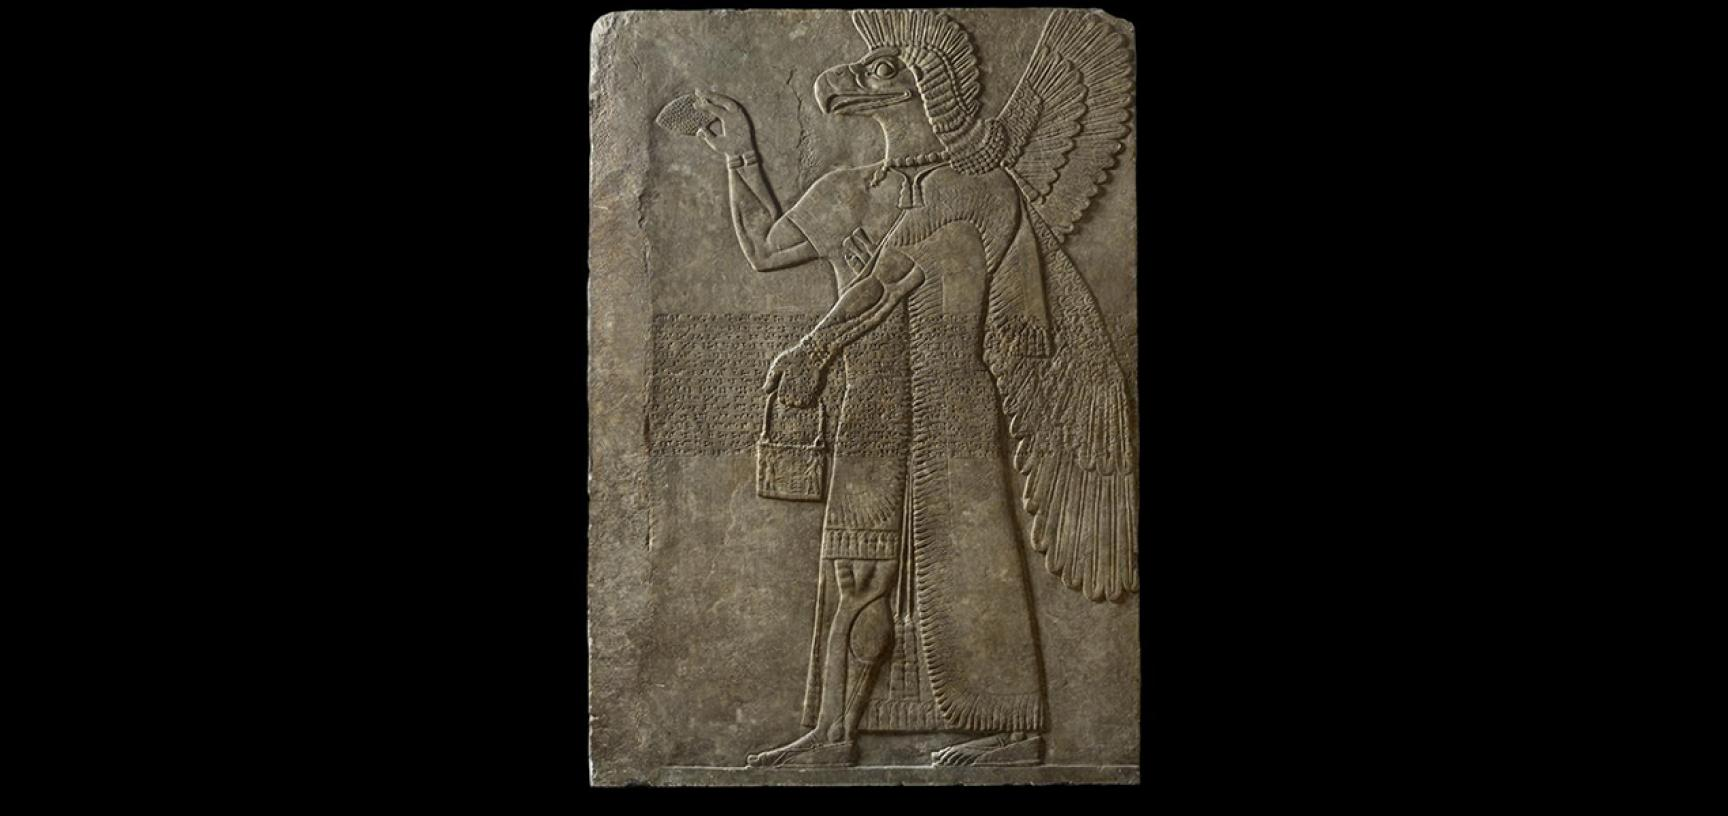 Protective spirit Nimrud, Iraq from the Ashmolean collections